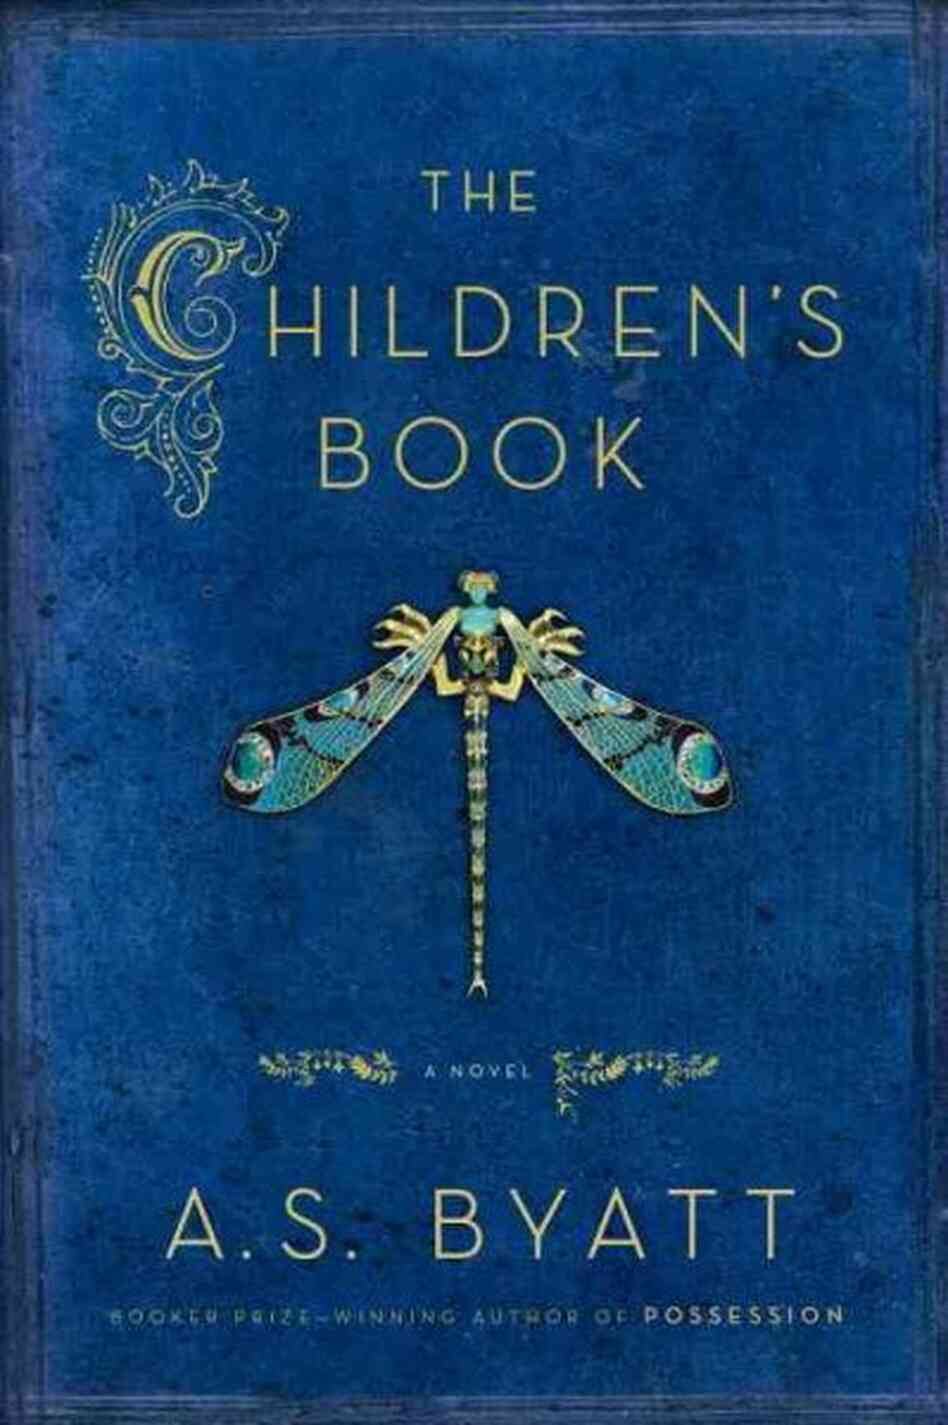 The Children's Book